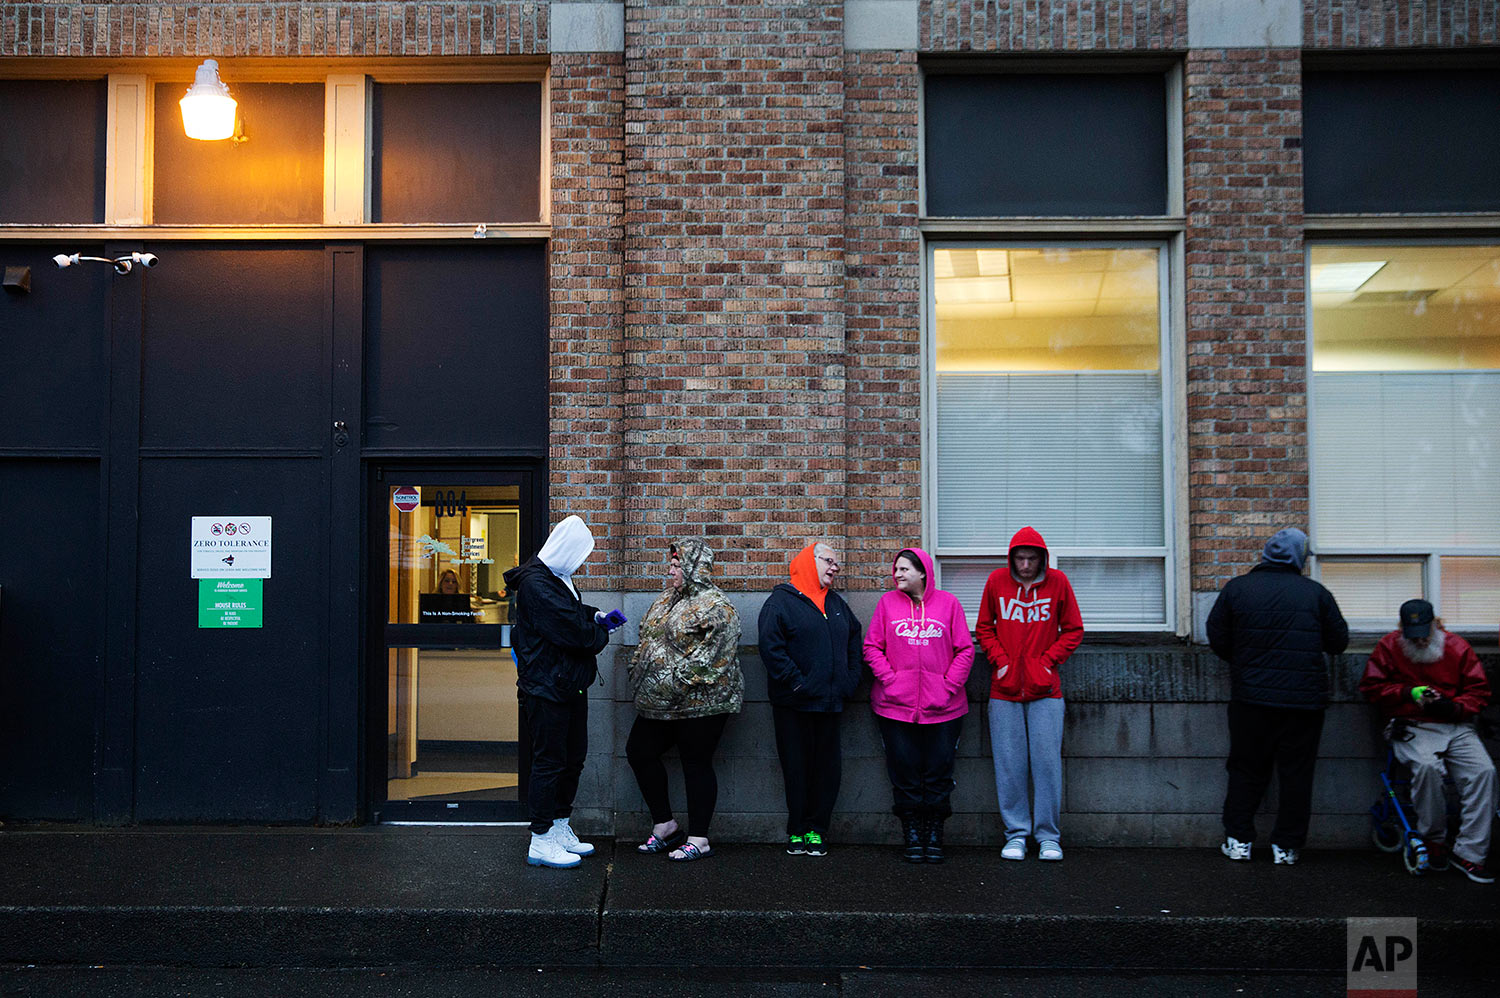 """People wait in line for the Evergreen Treatment Services methadone clinic to open in Hoquiam, Wash., Thursday, June 15, 2017. Penn State sociologist Shannon Monnat spent last fall plotting places on a map experiencing a rise in """"deaths of despair"""" _ from drugs, alcohol and suicide wrought by the decimation of jobs that used to bring dignity. On Election Day, a television map of Trump's victory looked eerily similar to hers documenting death, from New England through the Rust Belt all the way here, to the rural coast of Washington. (AP Photo/David Goldman)"""